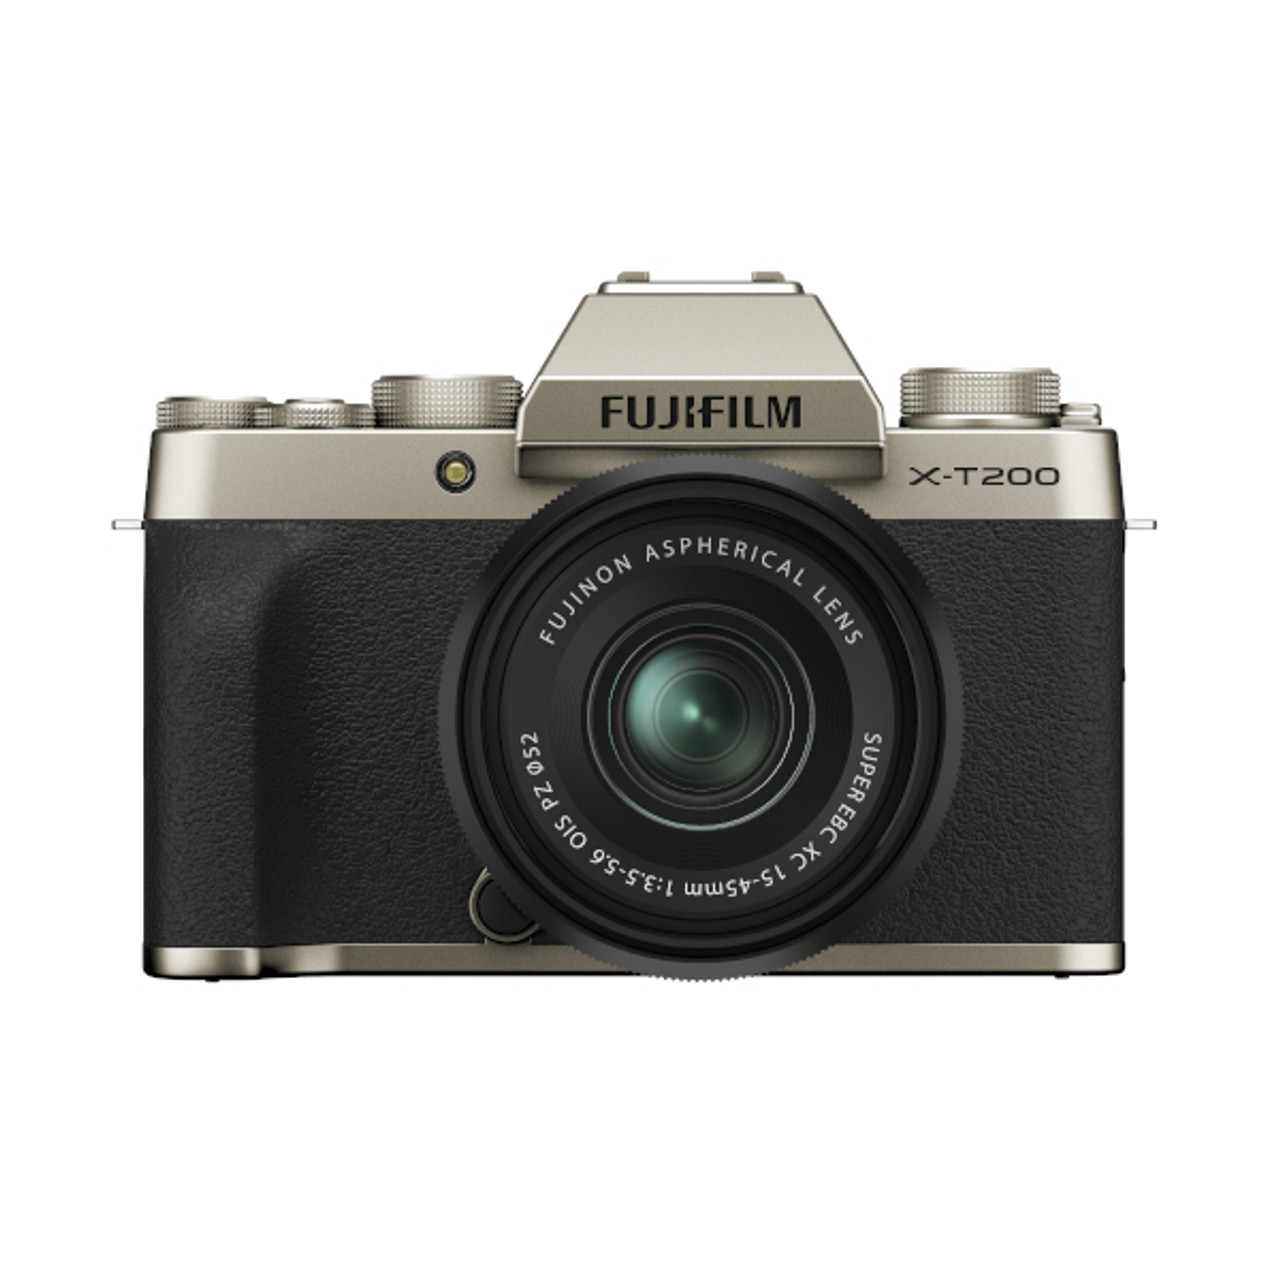 Fujifilm X-T200 XC 15-45mm F3.5-5.6 Kit (Champagne Gold)